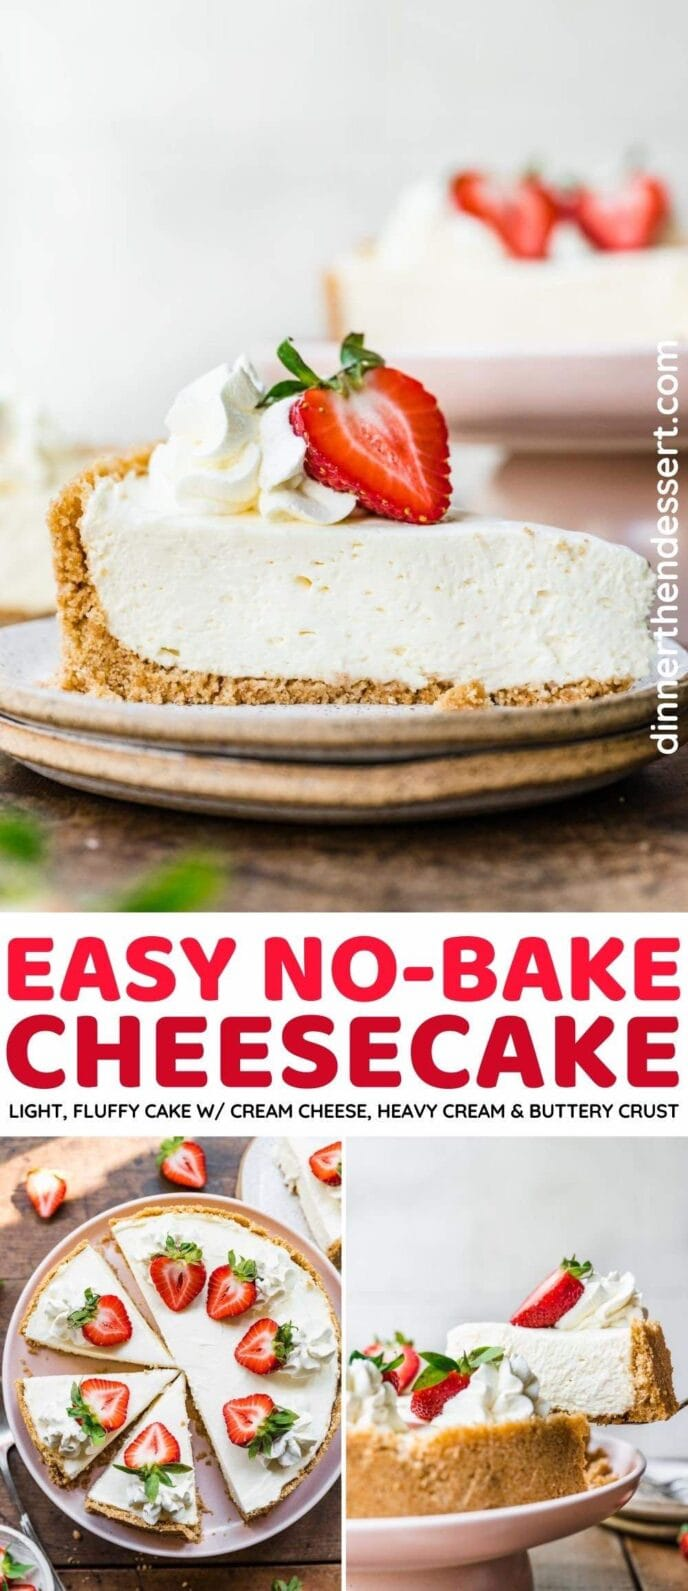 Easy No-Bake Cheesecake collage